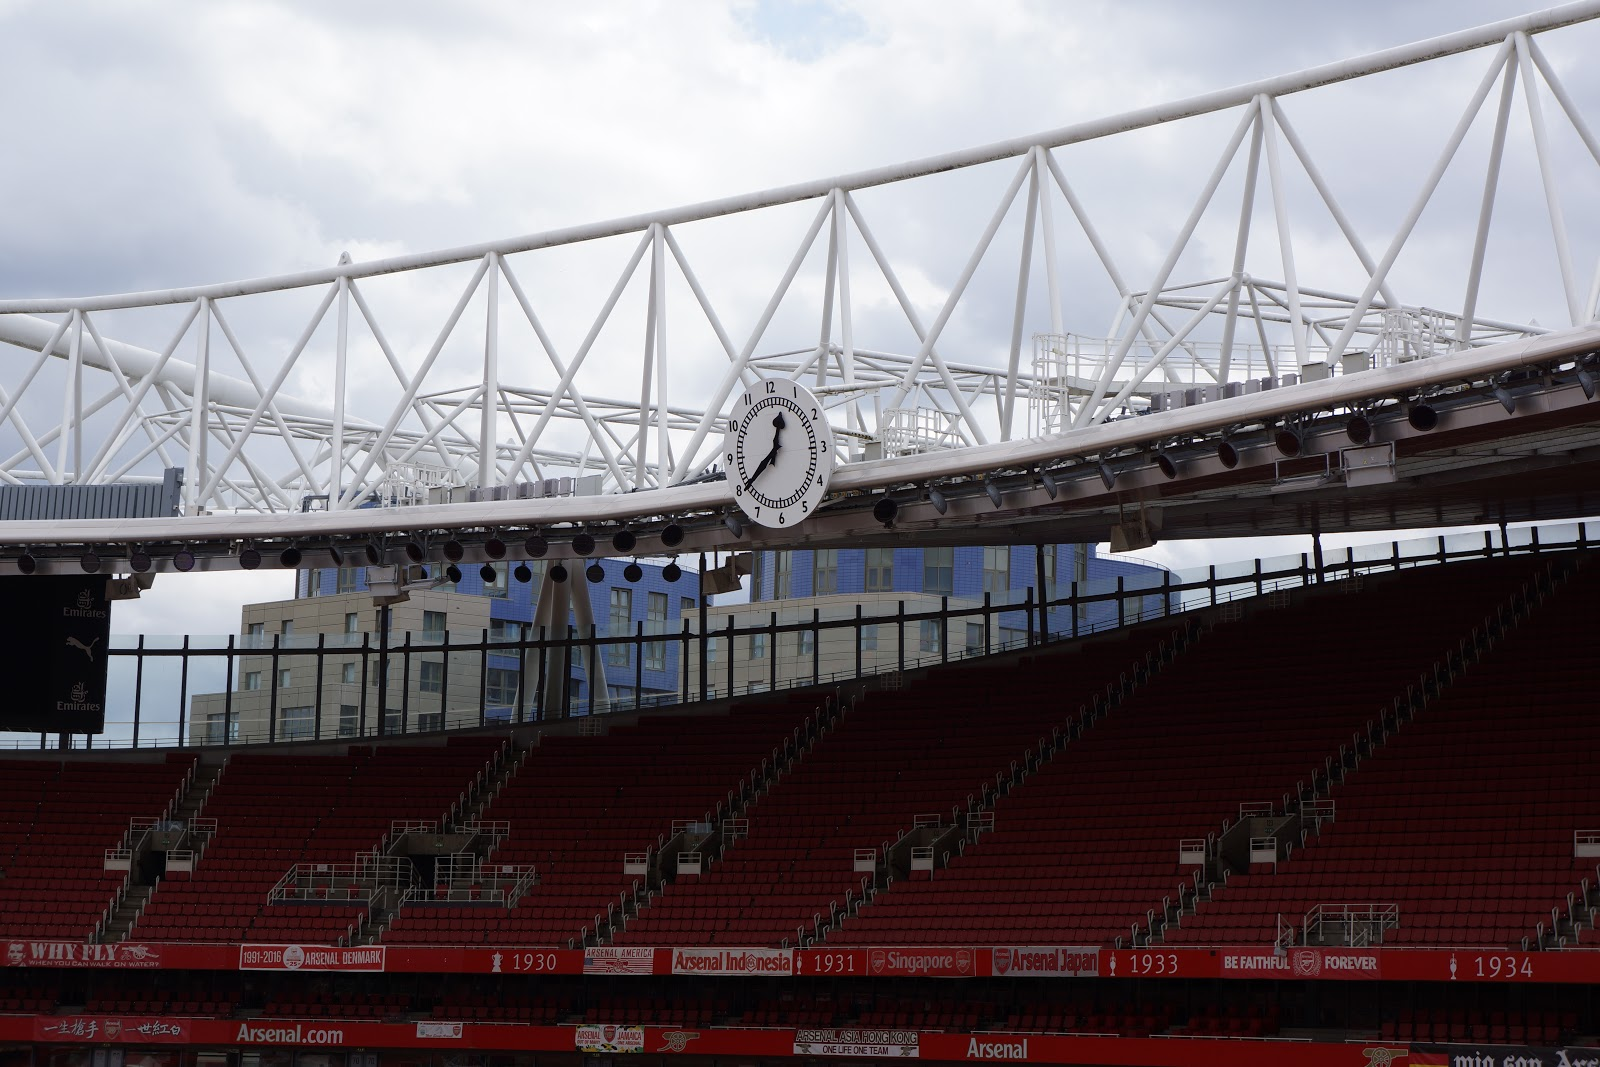 Arsenal Stadium clock